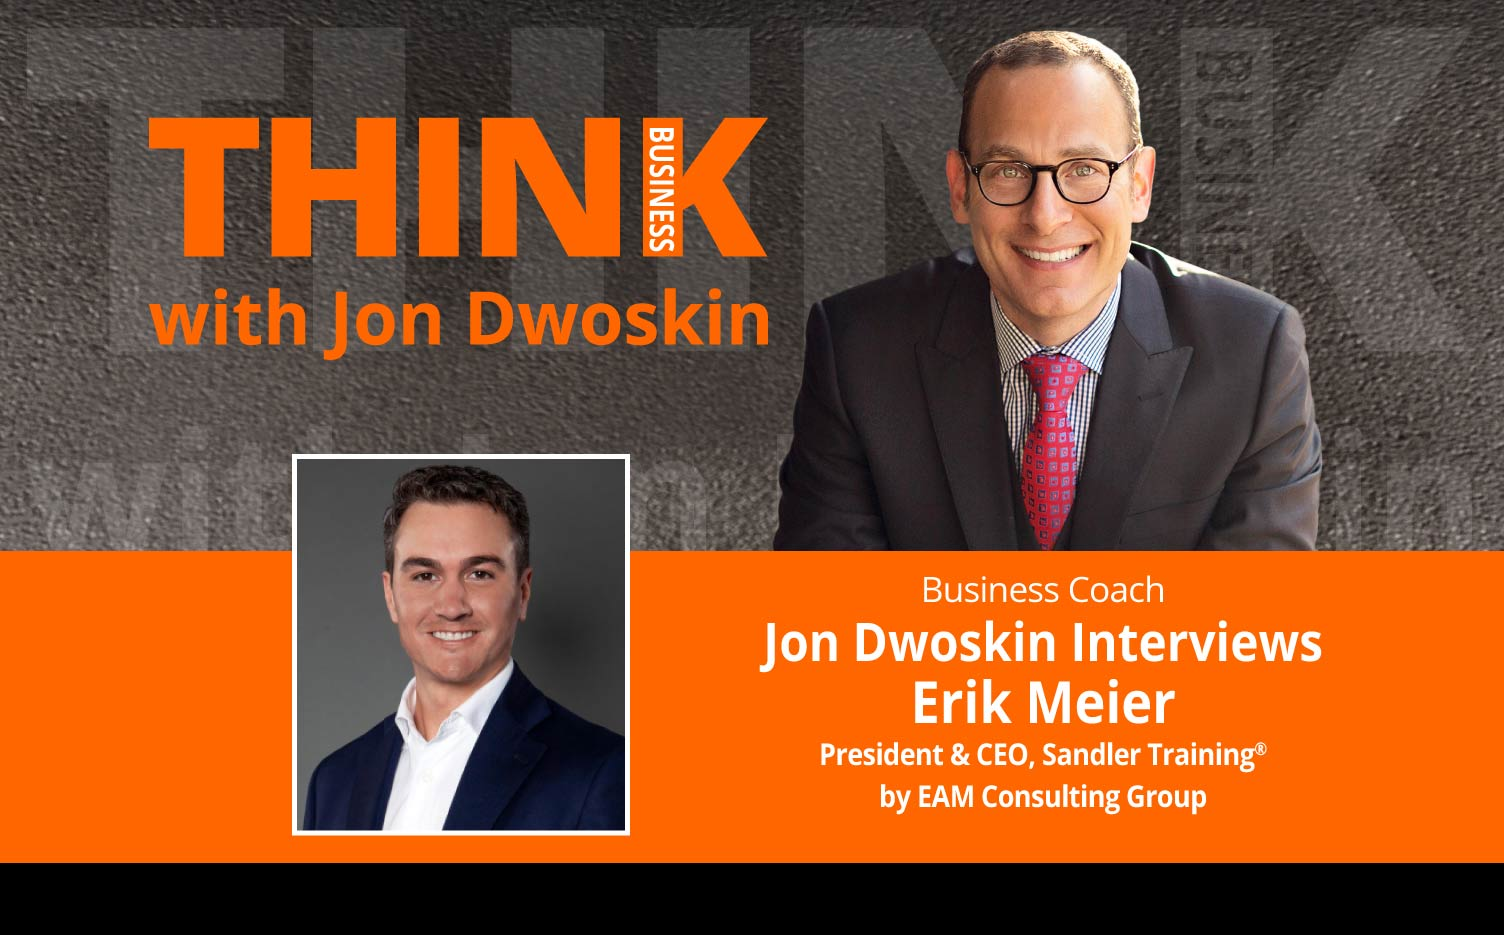 THINK Business Podcast: Jon Dwoskin Interviews Erik Meier, President & CEO, Sandler Training® by EAM Consulting Group